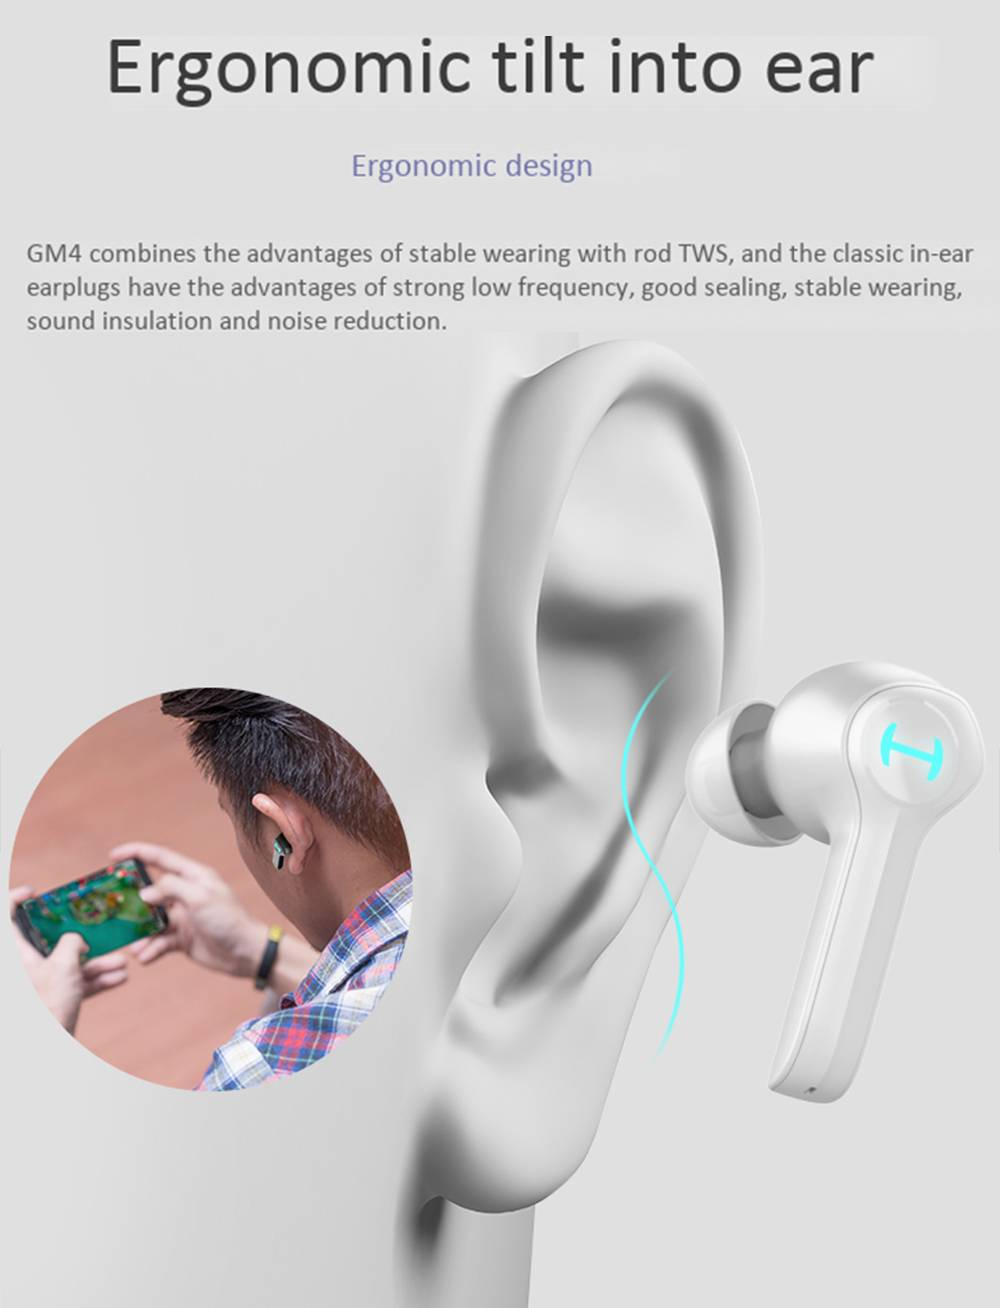 EDIFIER HECATE GM4 Bluetooth 5.0 True Wireless Earphones PAU160X with Ultra-Low Latency Game Mode Google Assistant Siri Used Independently 16 Hours Playback Time - Black